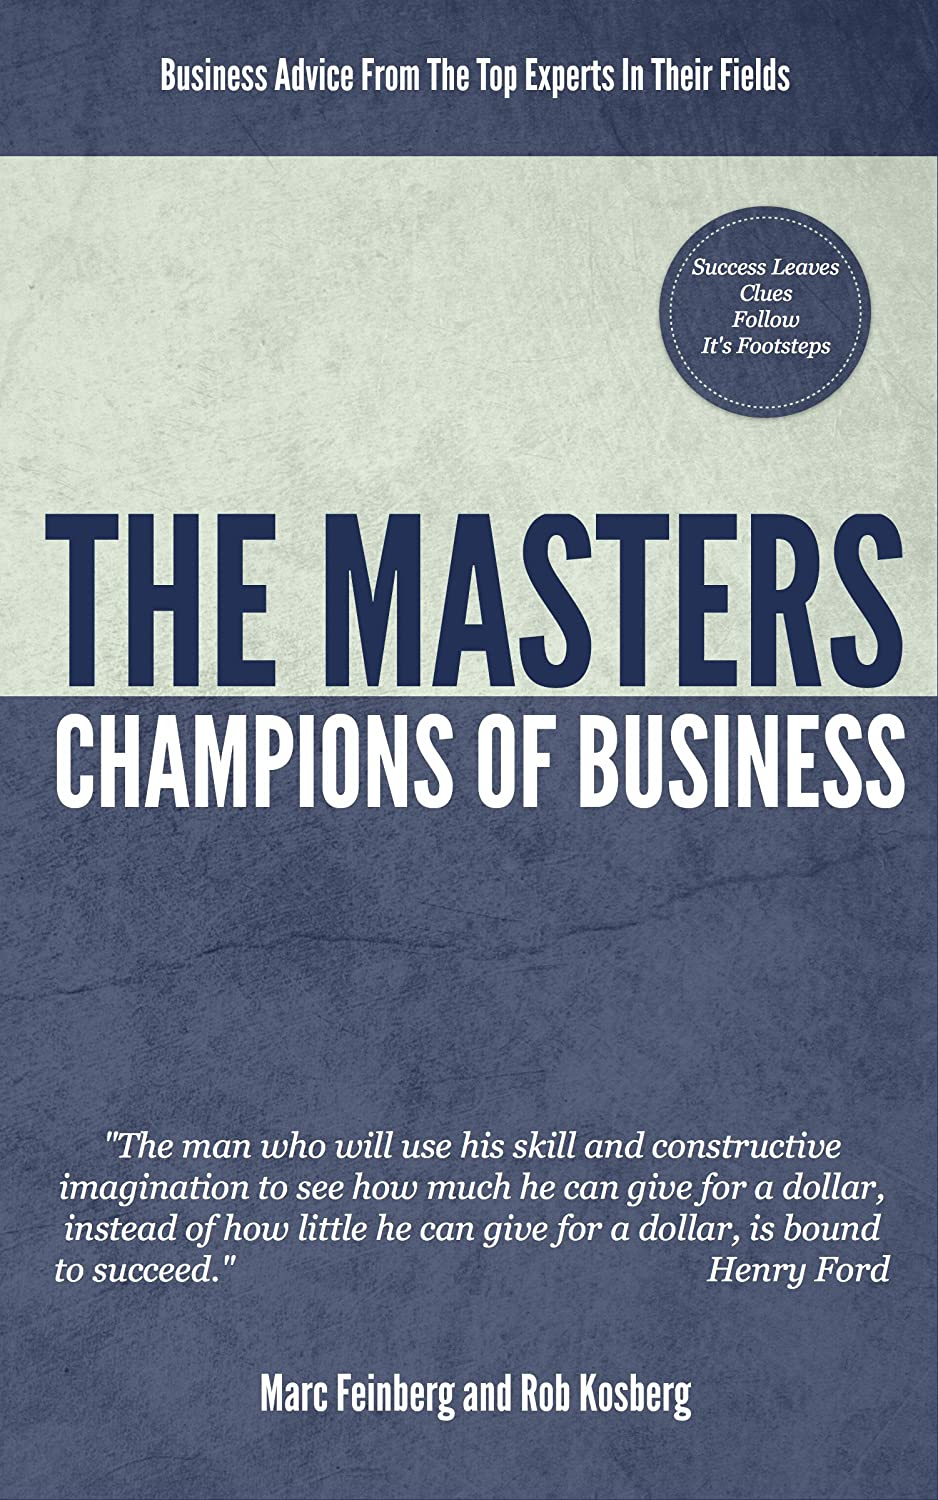 The Masters: Champions of Business by Melvin Claxton